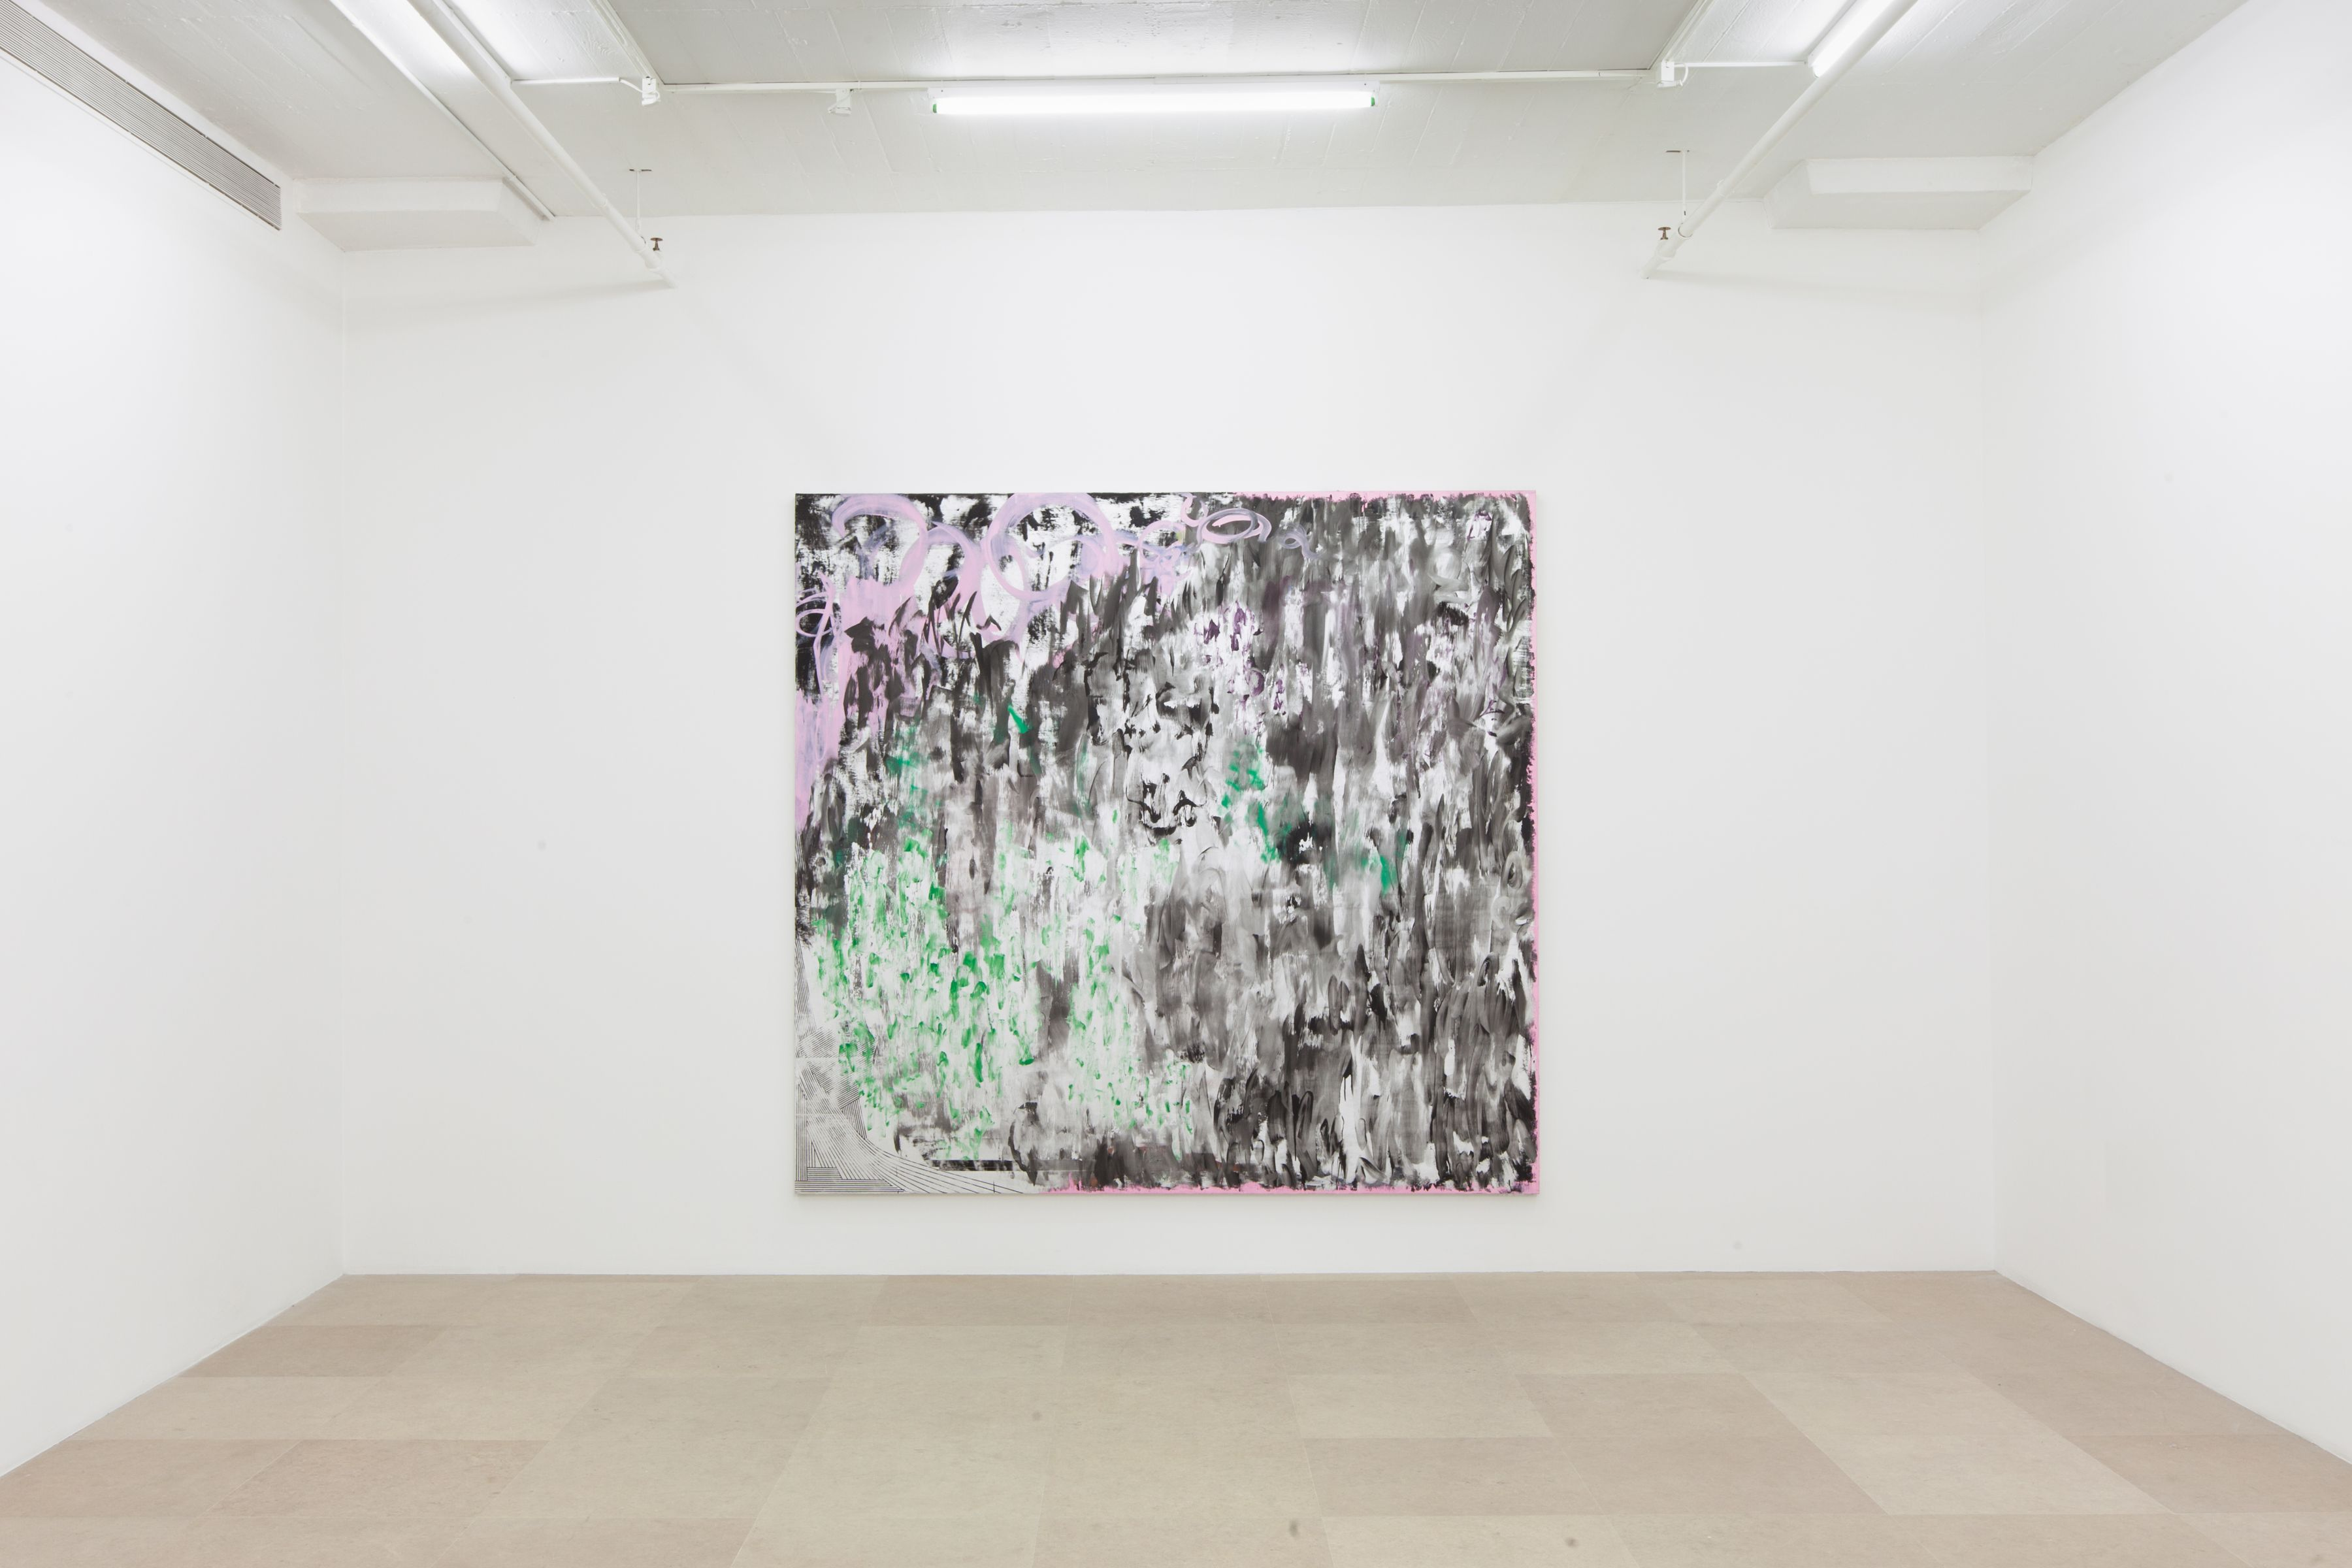 Jacqueline Humphries, Untitled, 2011, oil on canvas, 90 x 96 inches, Installation view, Greene Naftali, New York, 2012